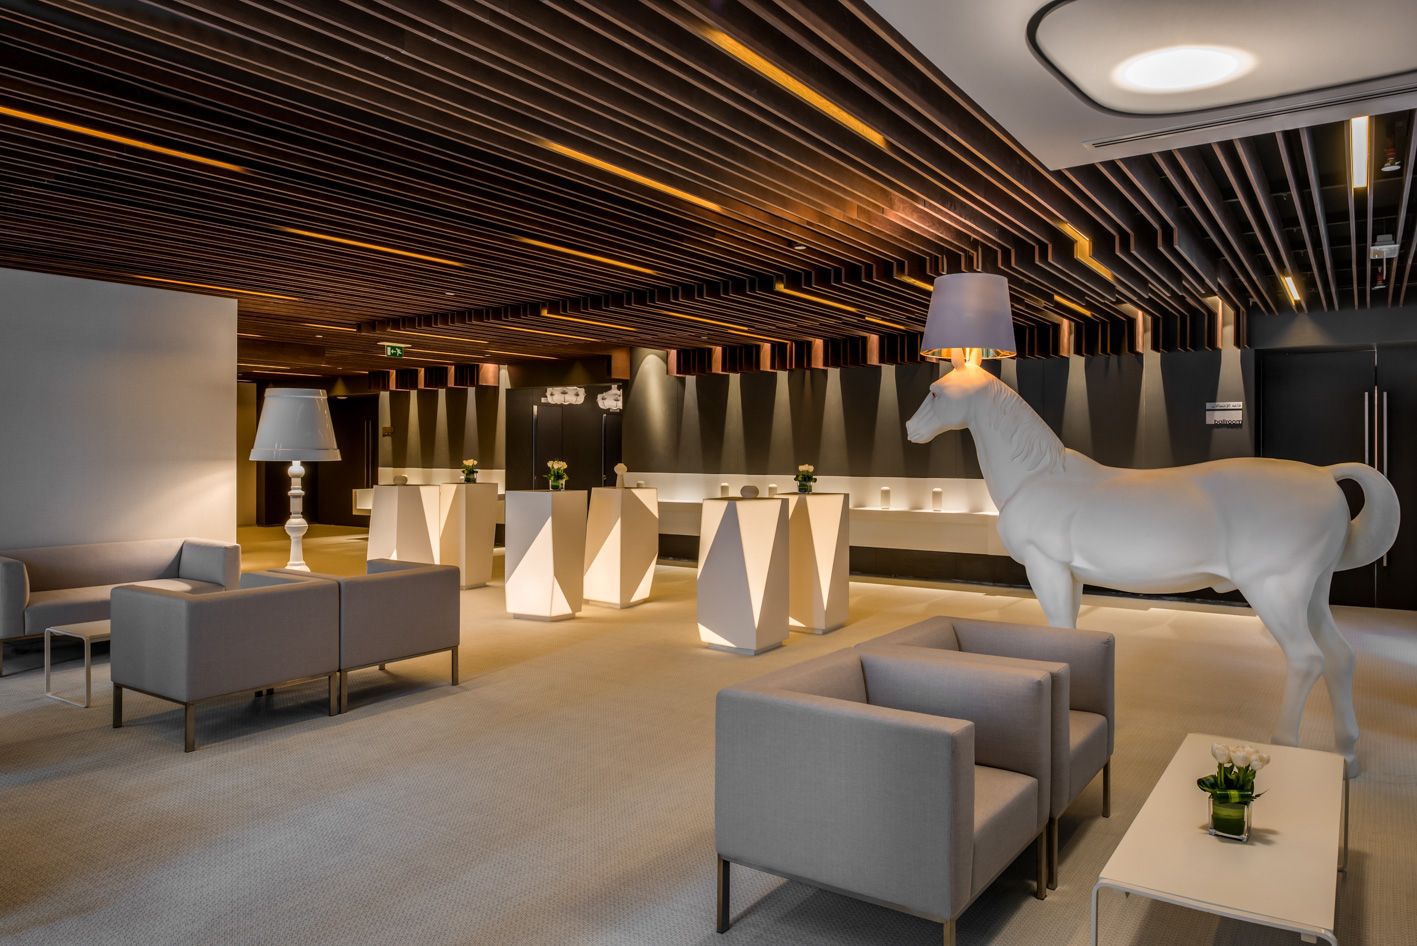 The act hotel sharjah space international hotel design for International hotel design